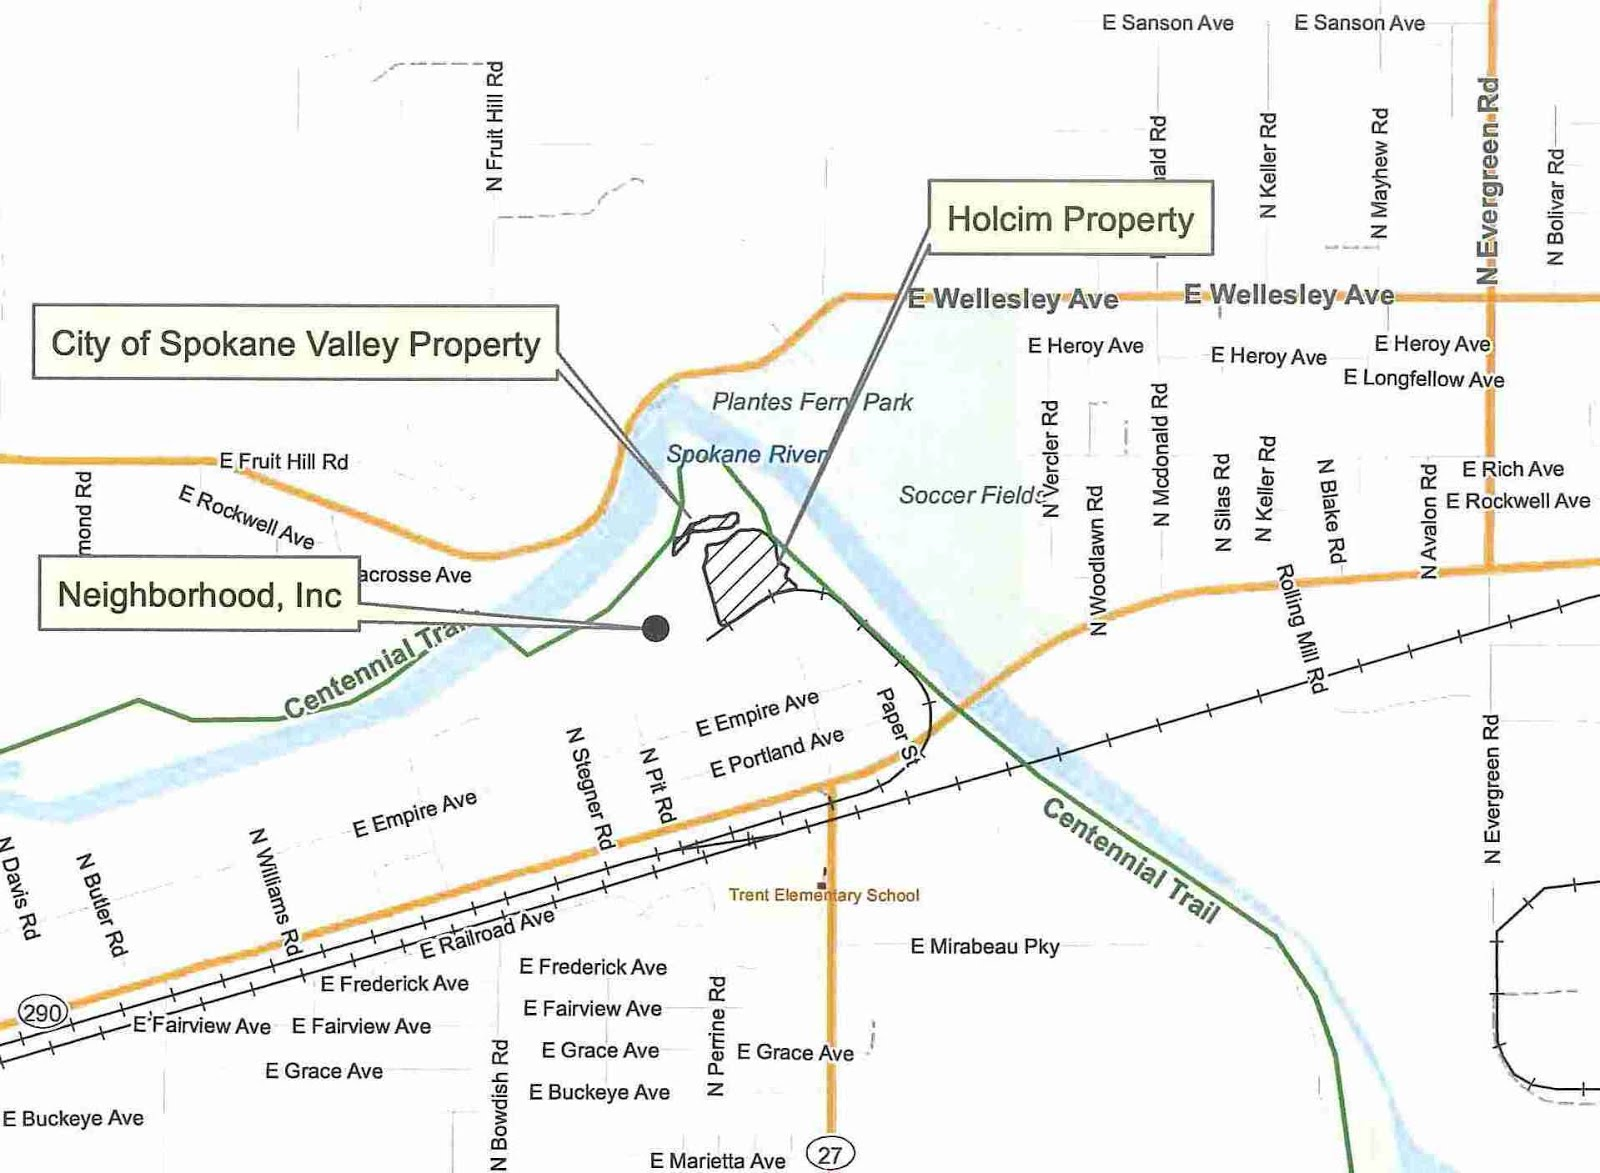 The Holcim site is in the the bend of the Spokane River, south of City property.